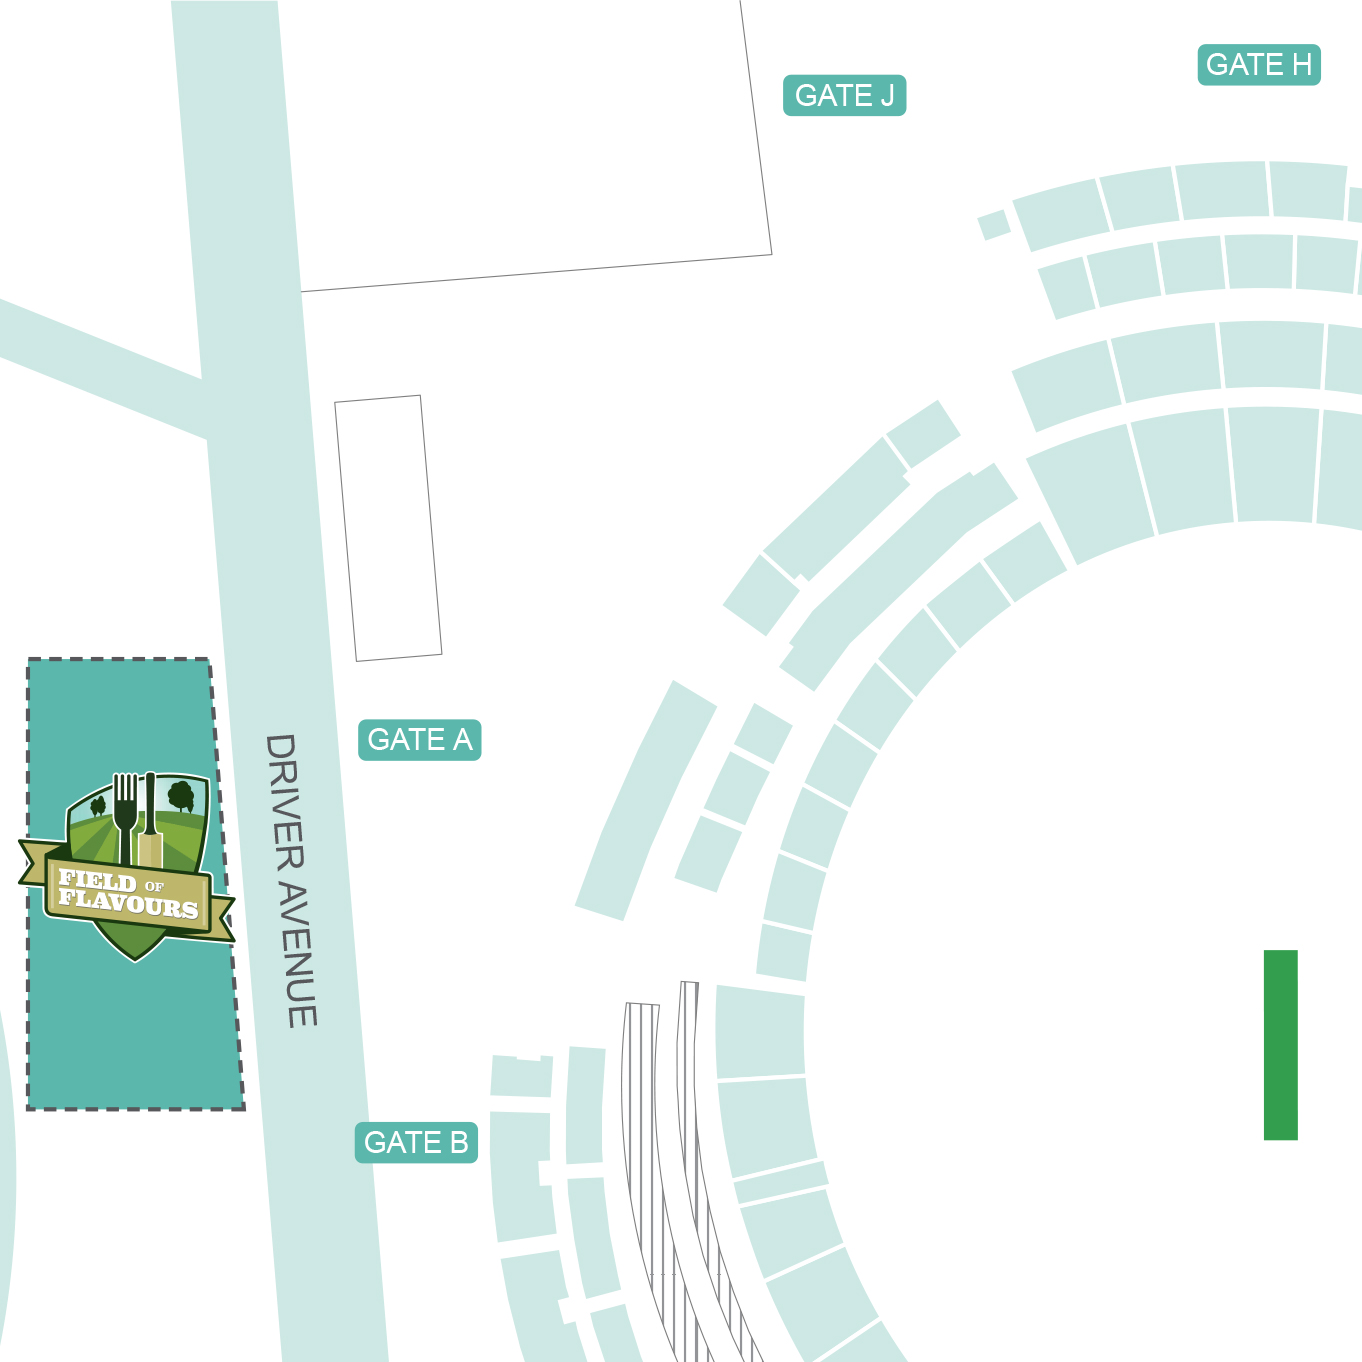 Location at the SCG